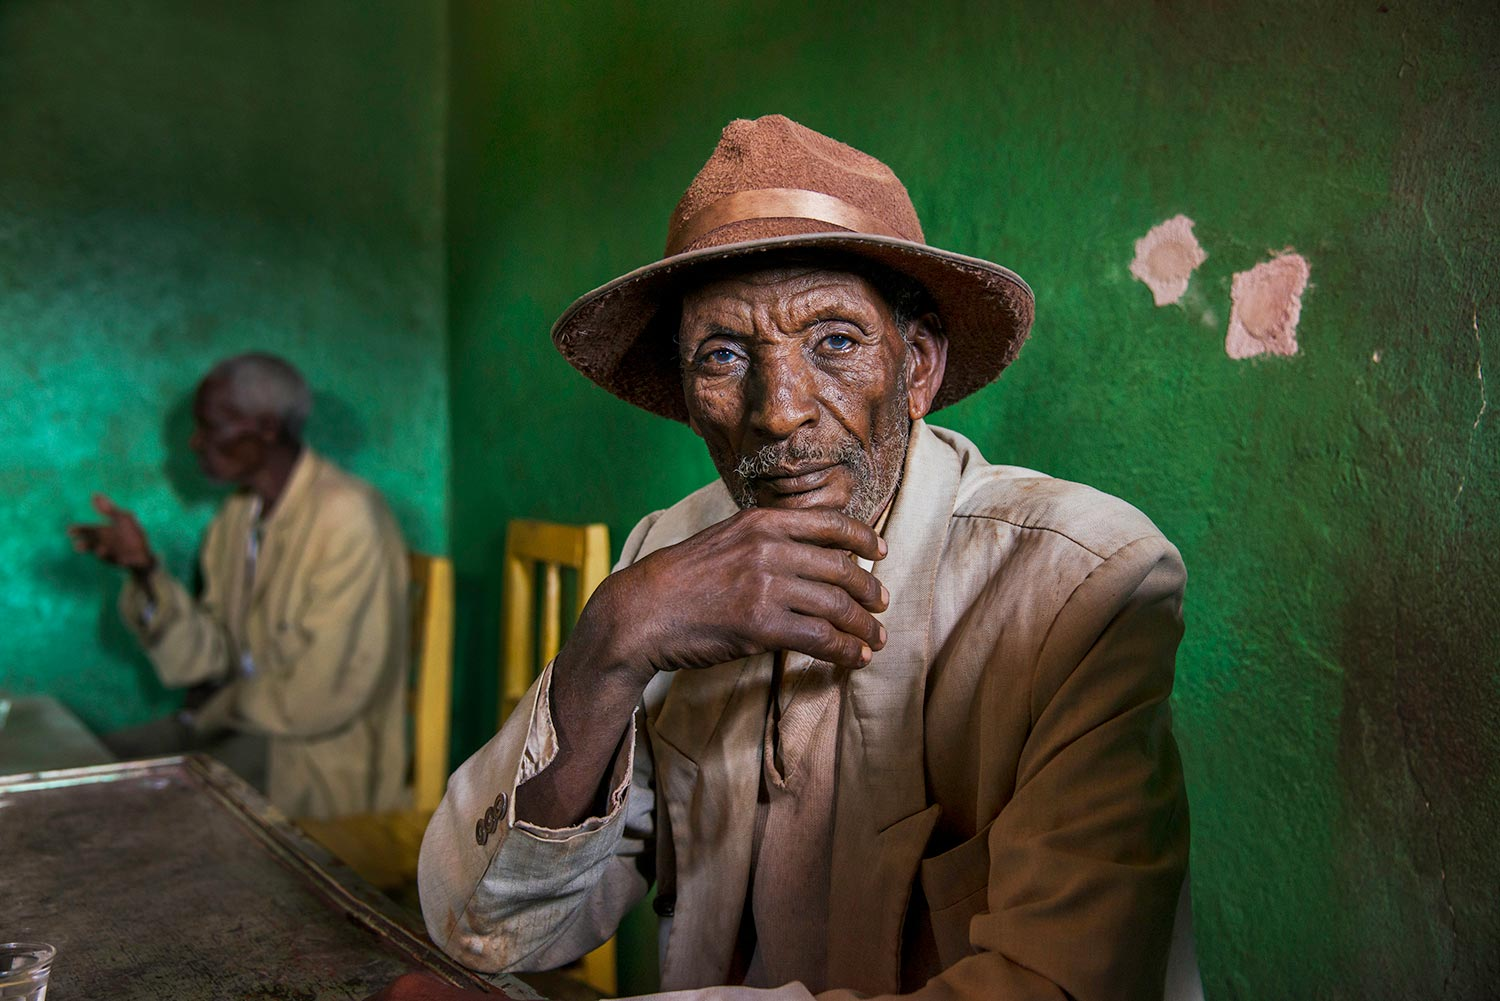 Portrait of an elderly man sitting in a green room, Ethiopia, 2014